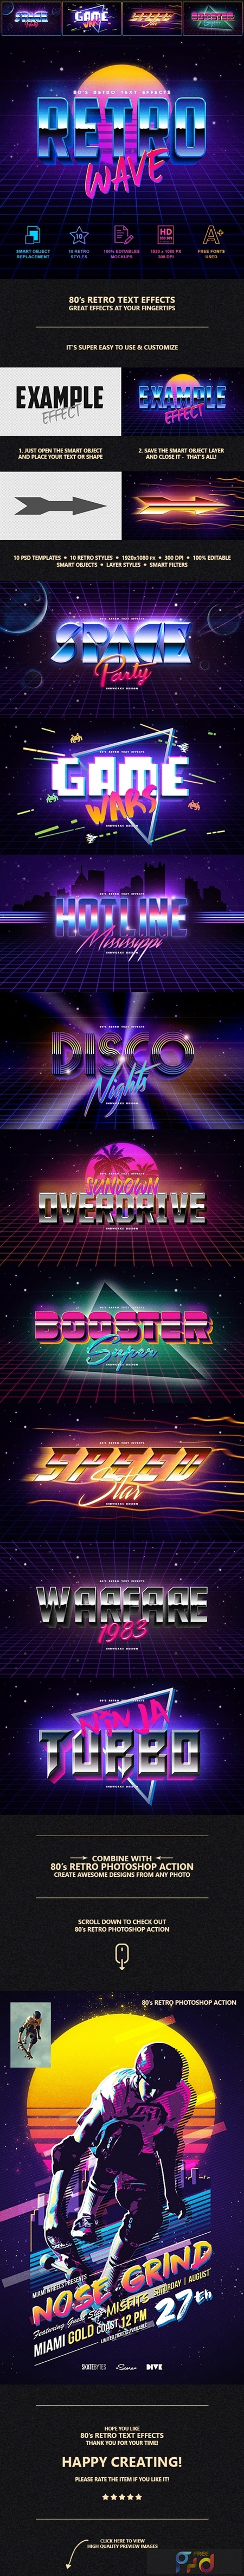 80's Retro Text Effects 24165605 1